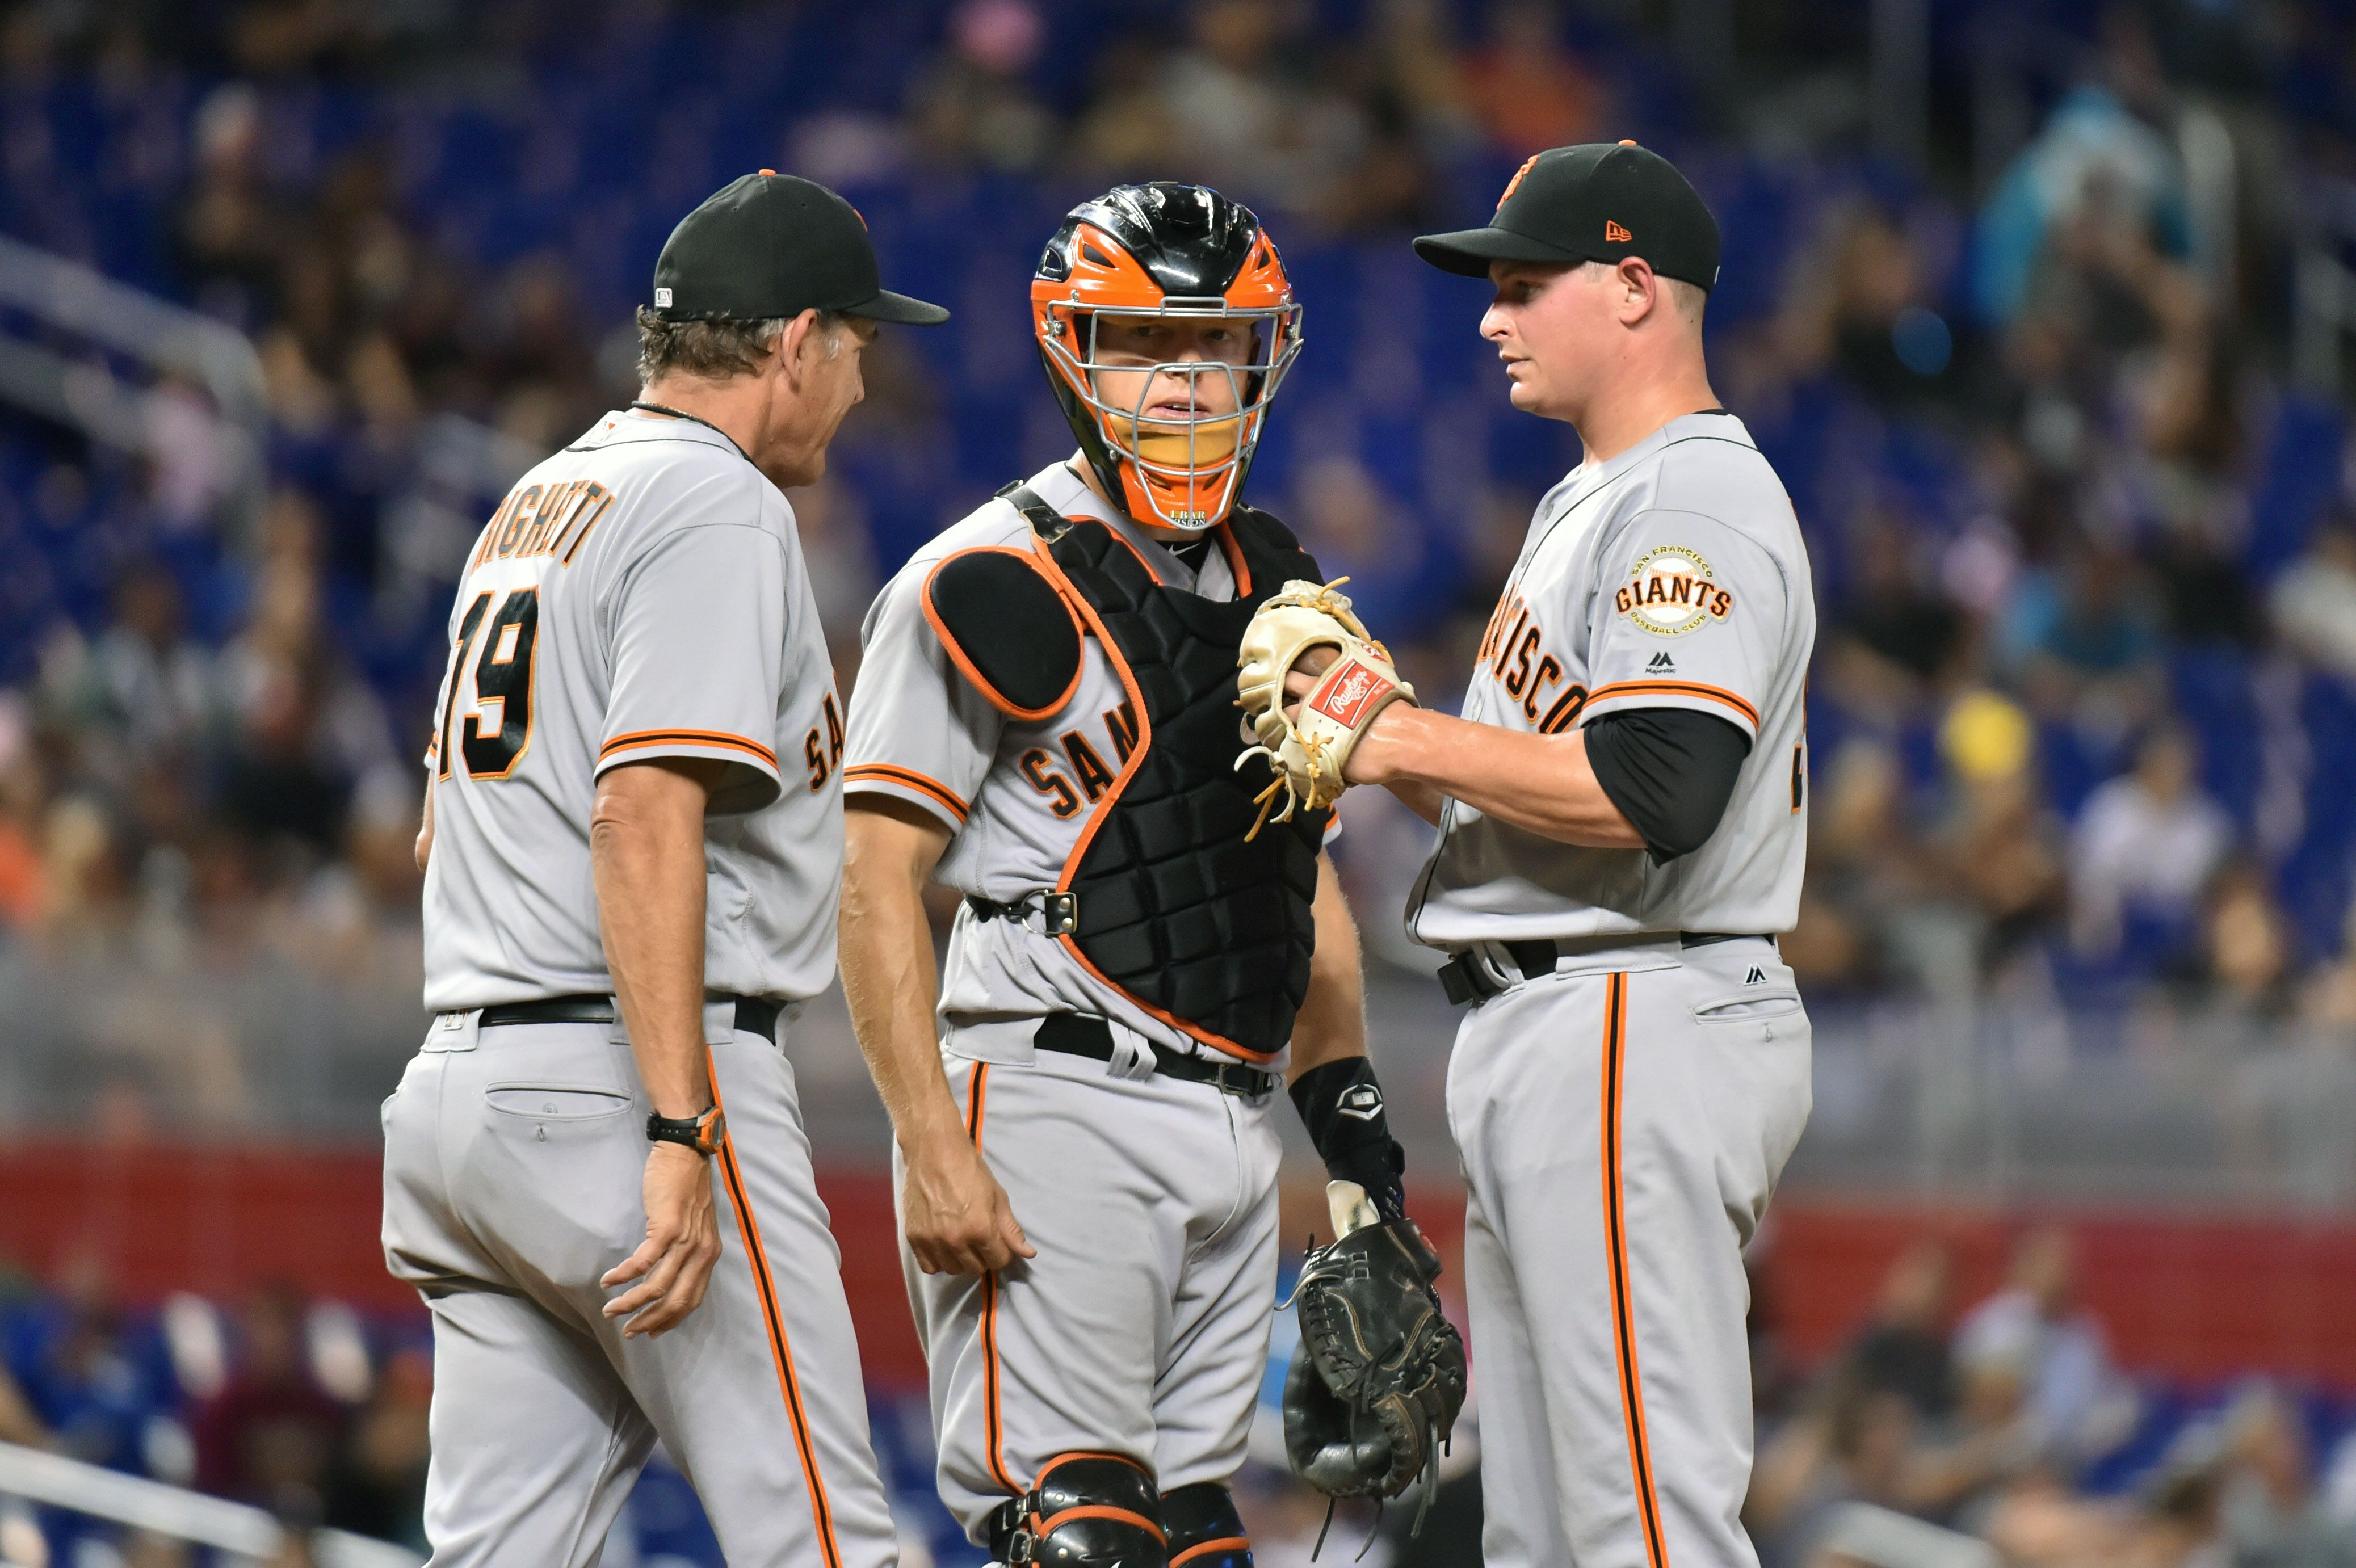 831482864-san-francisco-giants-v-miami-marlins.jpg